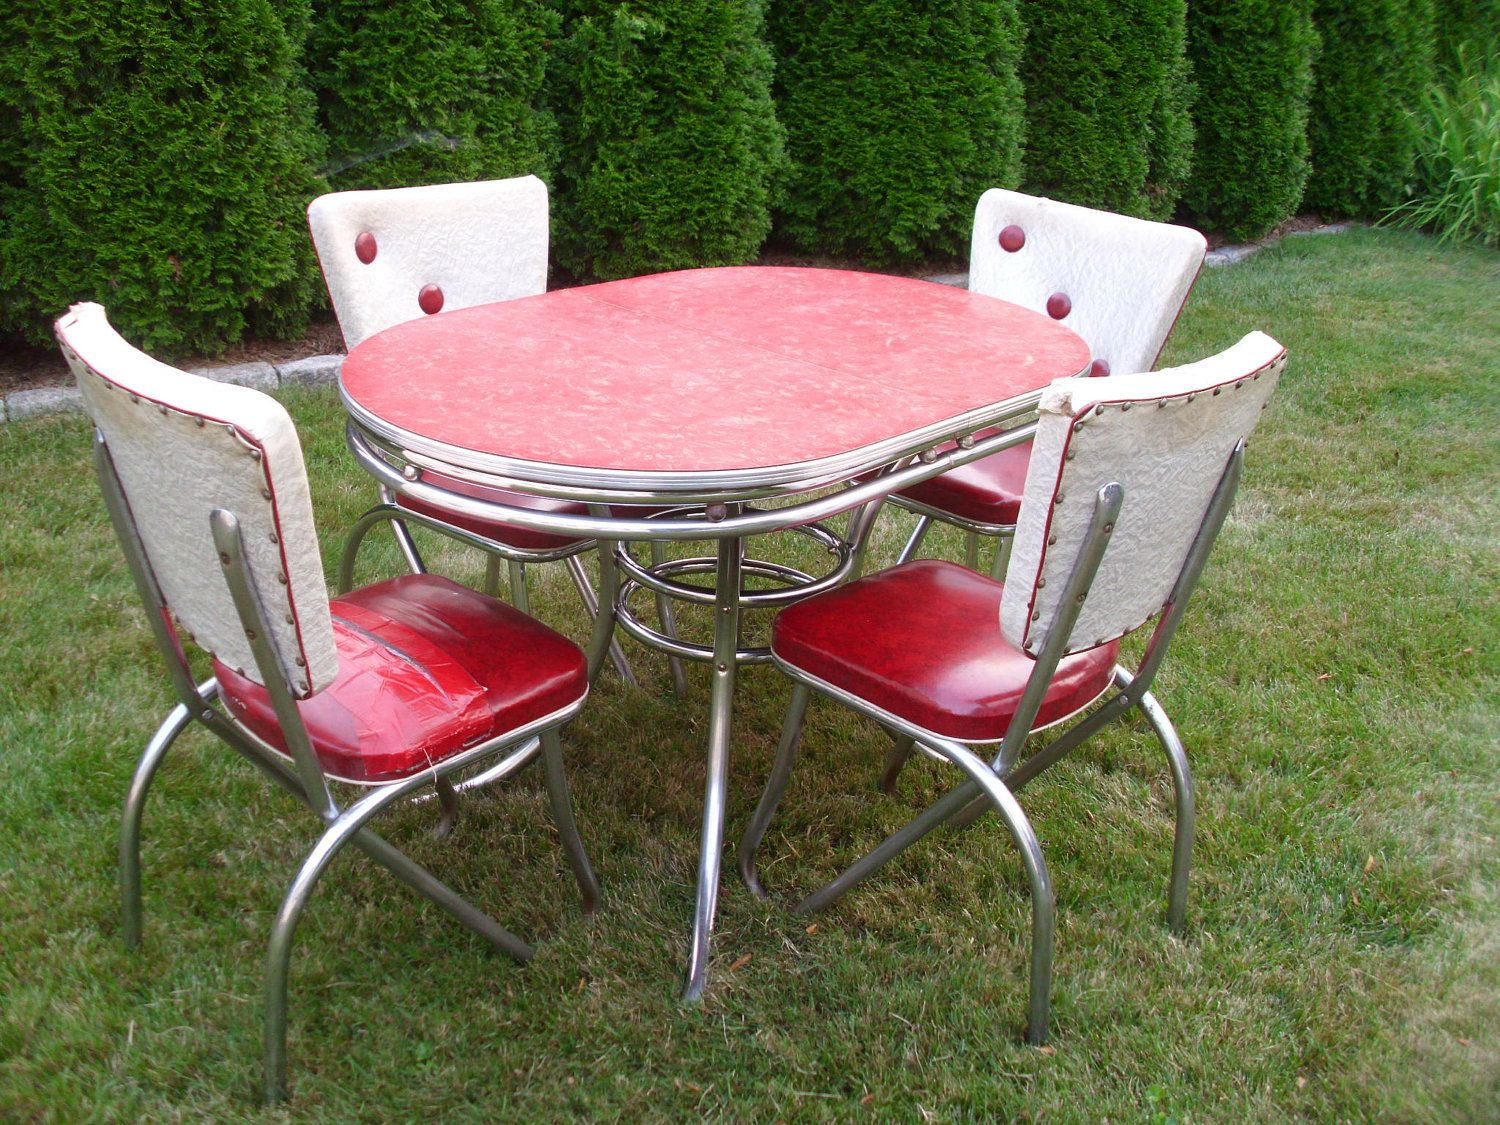 1950 kitchen table and chairs retro 1950 kitchen chairs   vintage 1950s kitchen table  u0026 chairs      rh   pinterest com